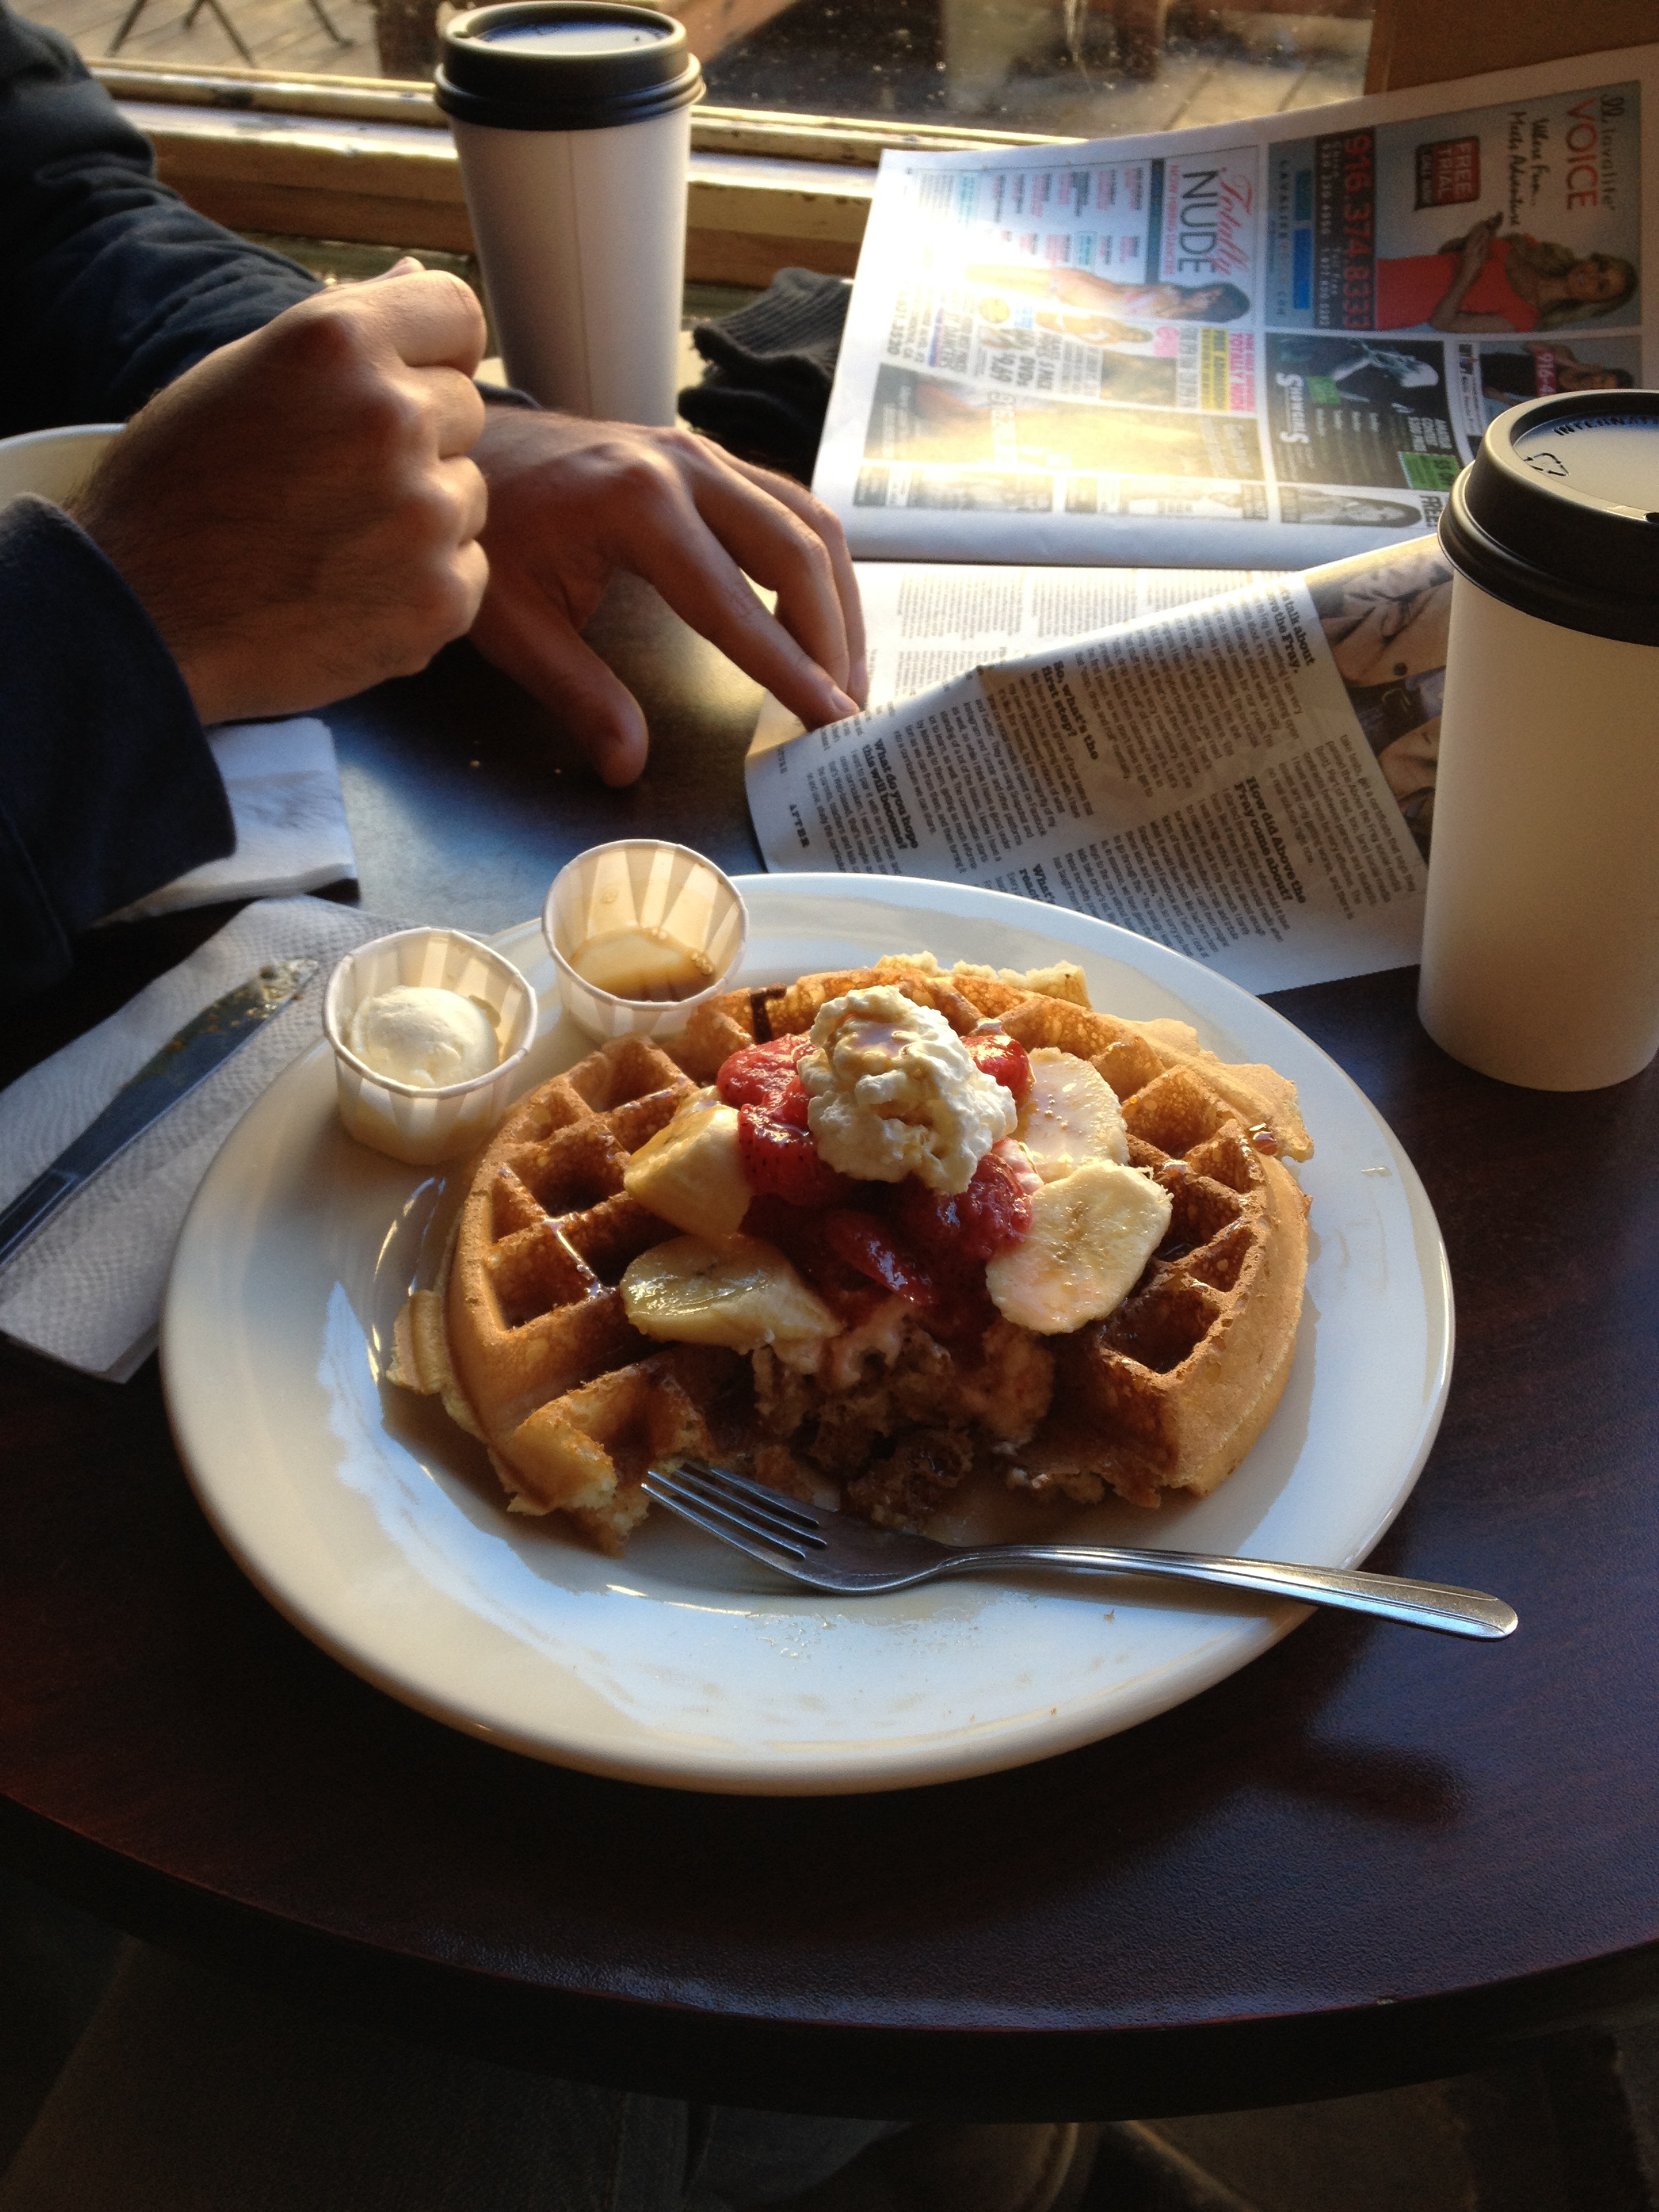 I was almost late to the craft fair because I had to have a waffle piled with strawberries, bananas and agave syrup from  Cafe Mekka . On the second morning, we went to the  South Pine Cafe , which I highly recommend.